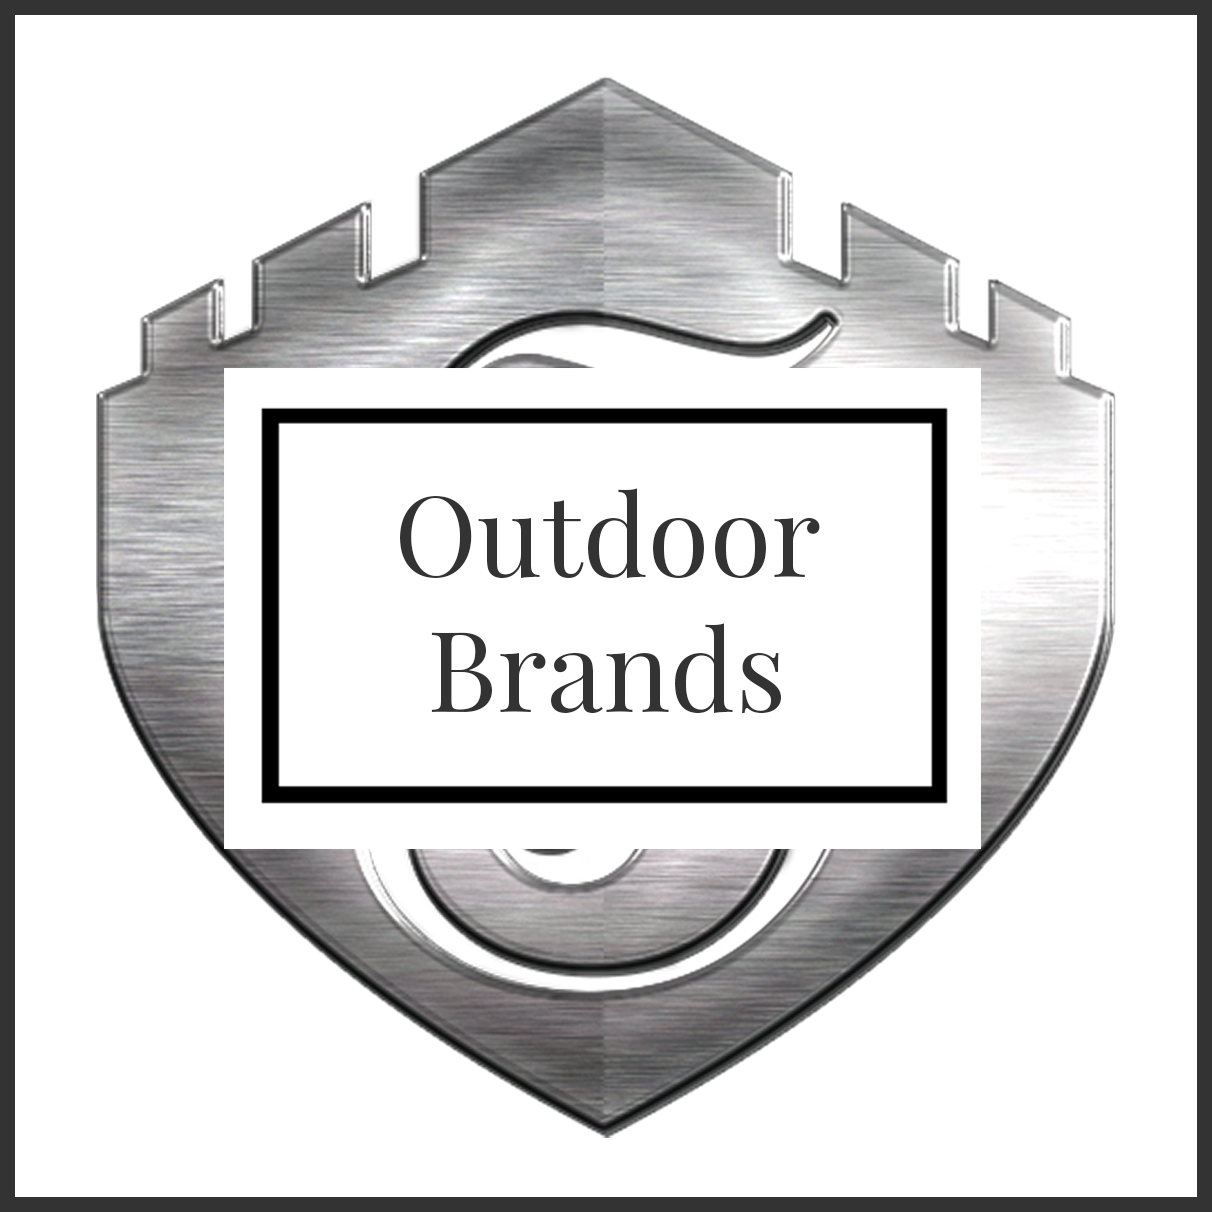 Outdoor Brands